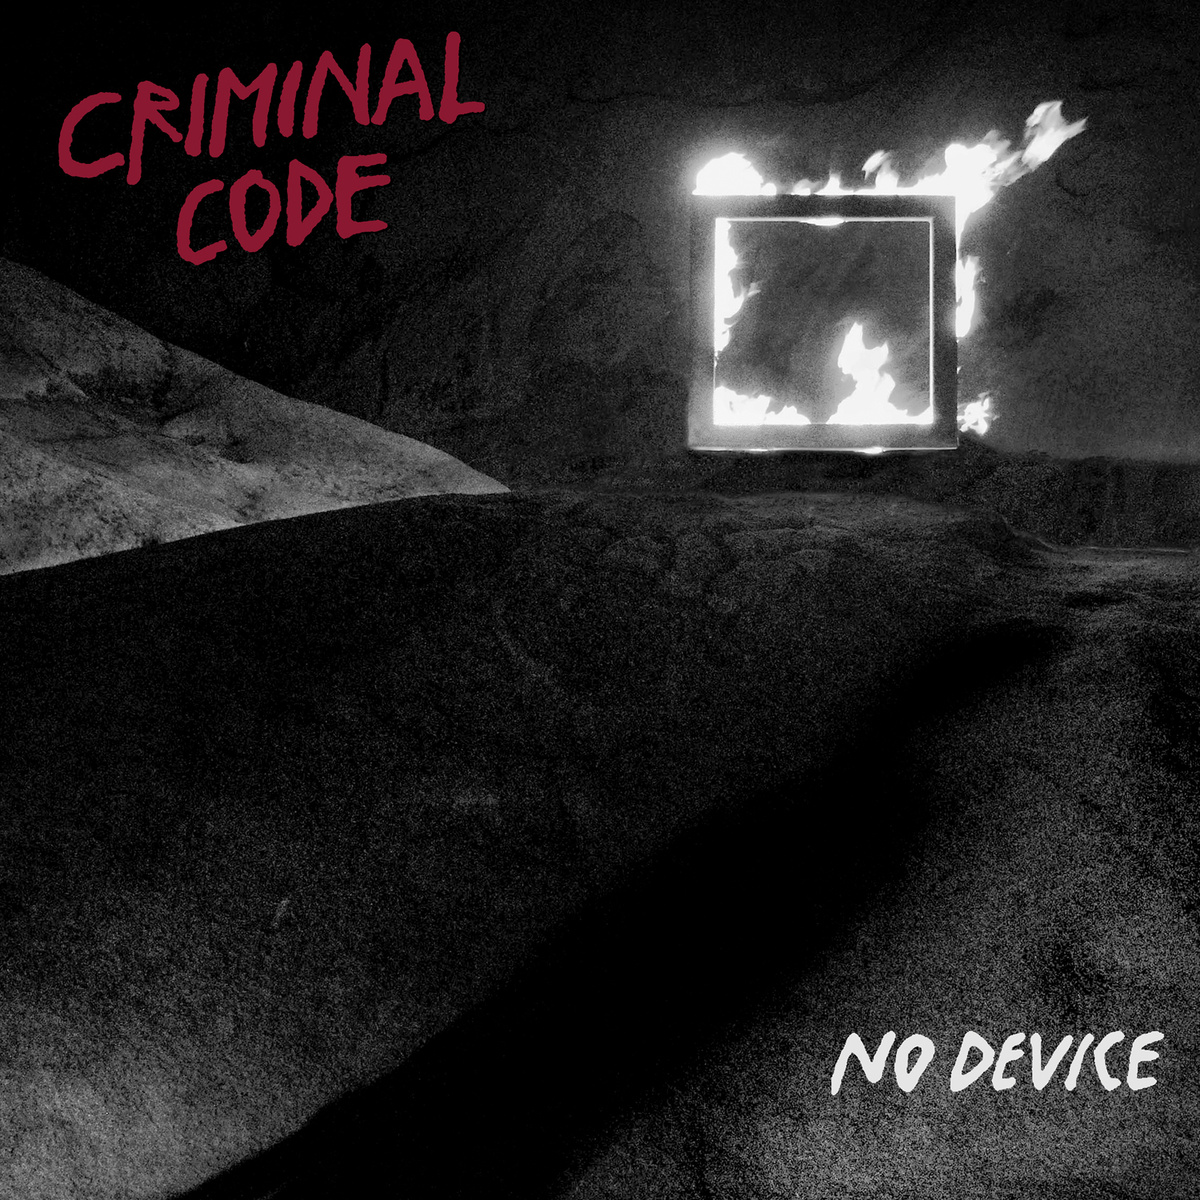 Criminal Code - No Device